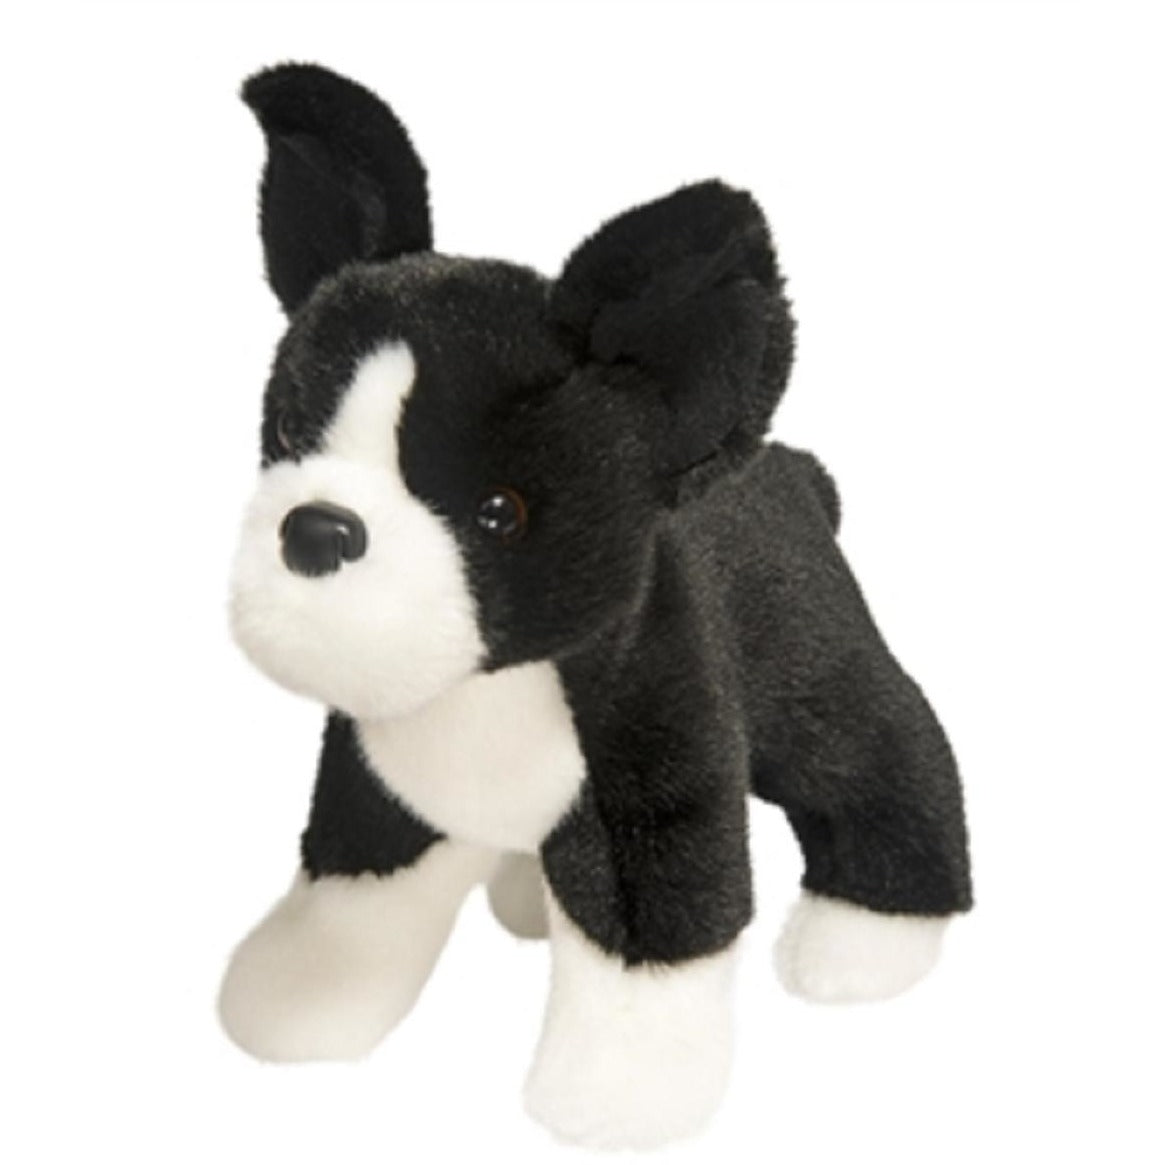 10 Inch Myrtle Boston Terrier Dog Plush Stuffed Animal By Douglas